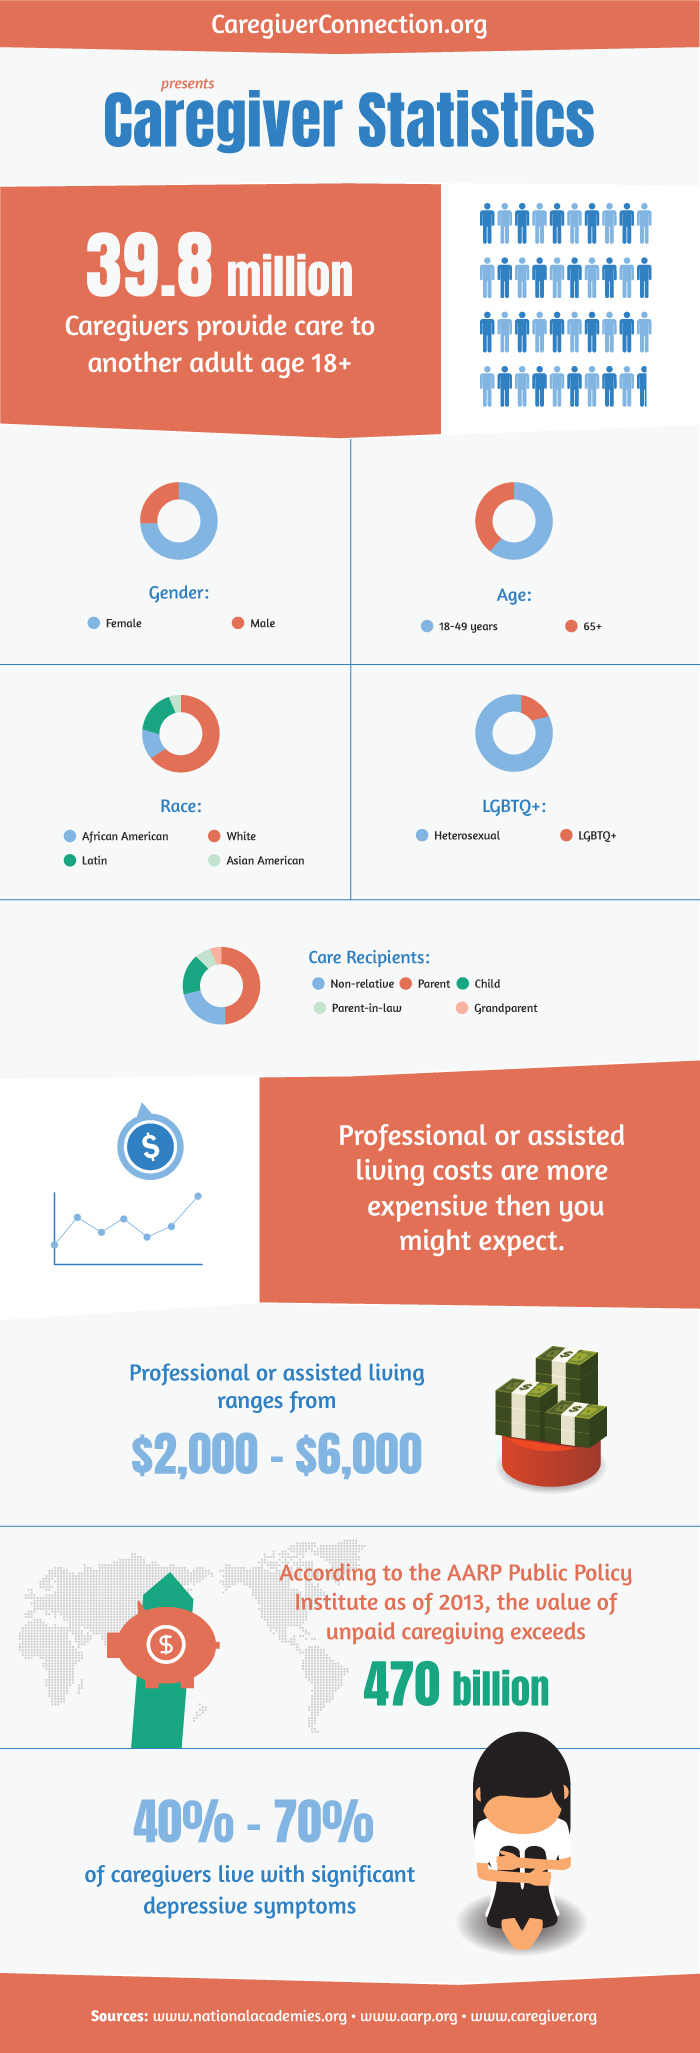 Caregiver Connection Statistics Infographic